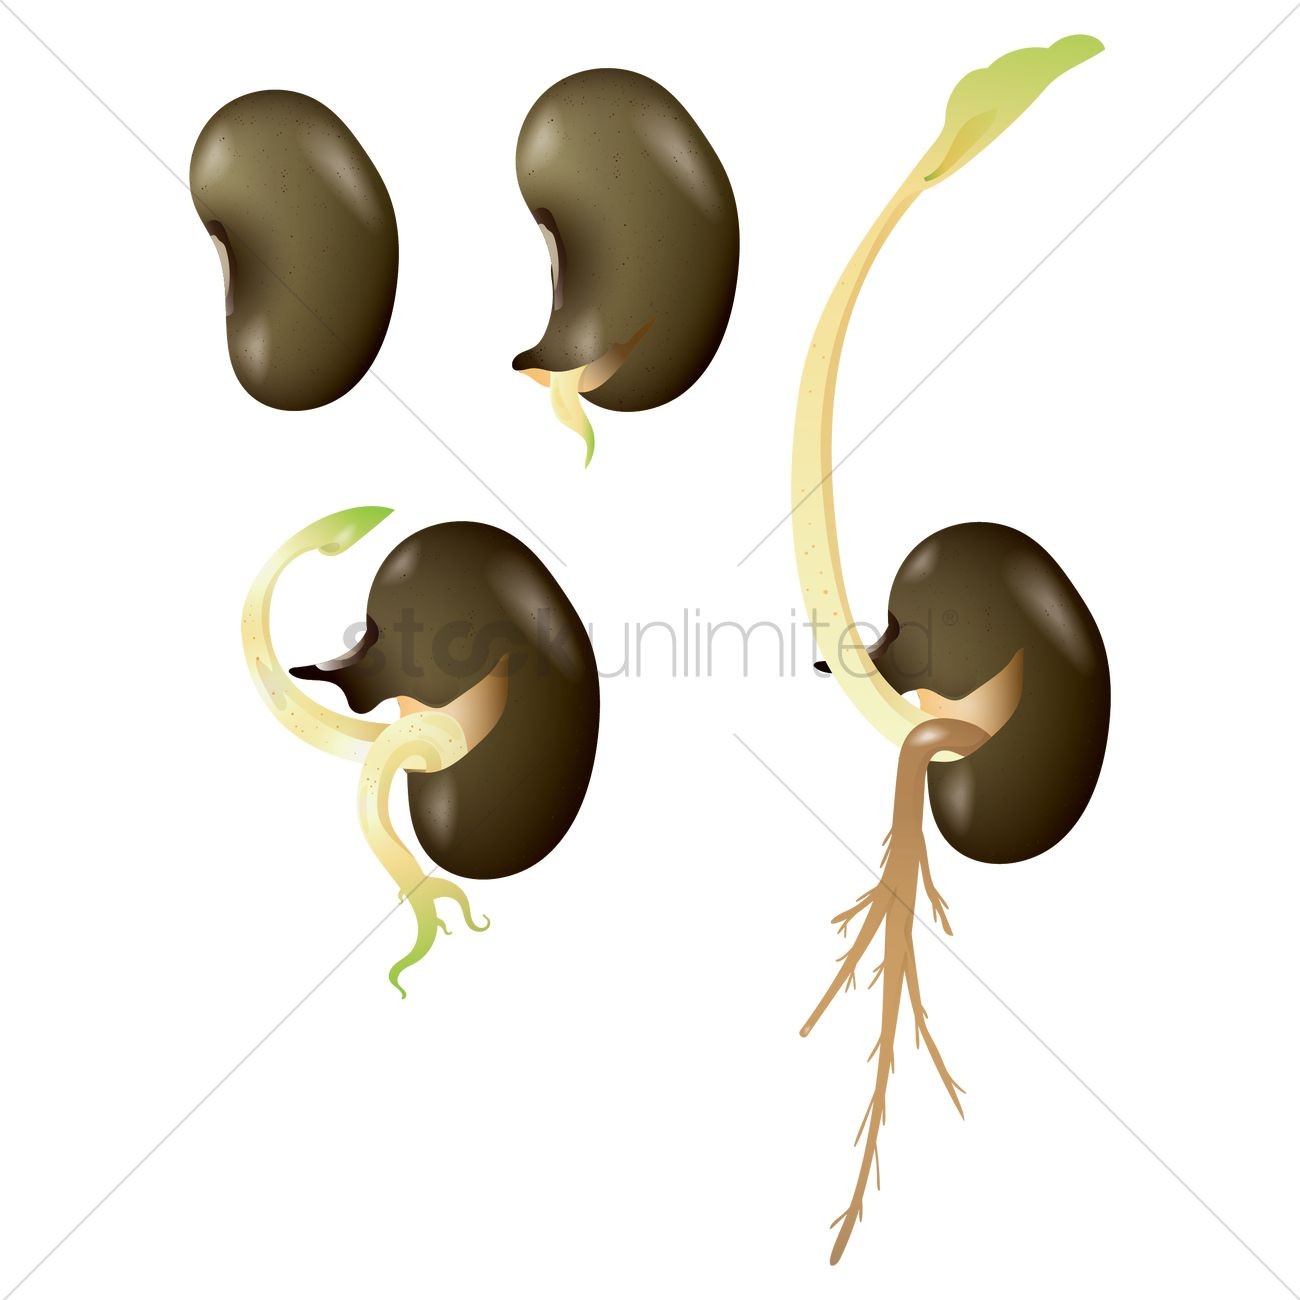 Different Seeds Stock Illustrations – 1,601 Different Seeds Stock  Illustrations, Vectors & Clipart - Dreamstime